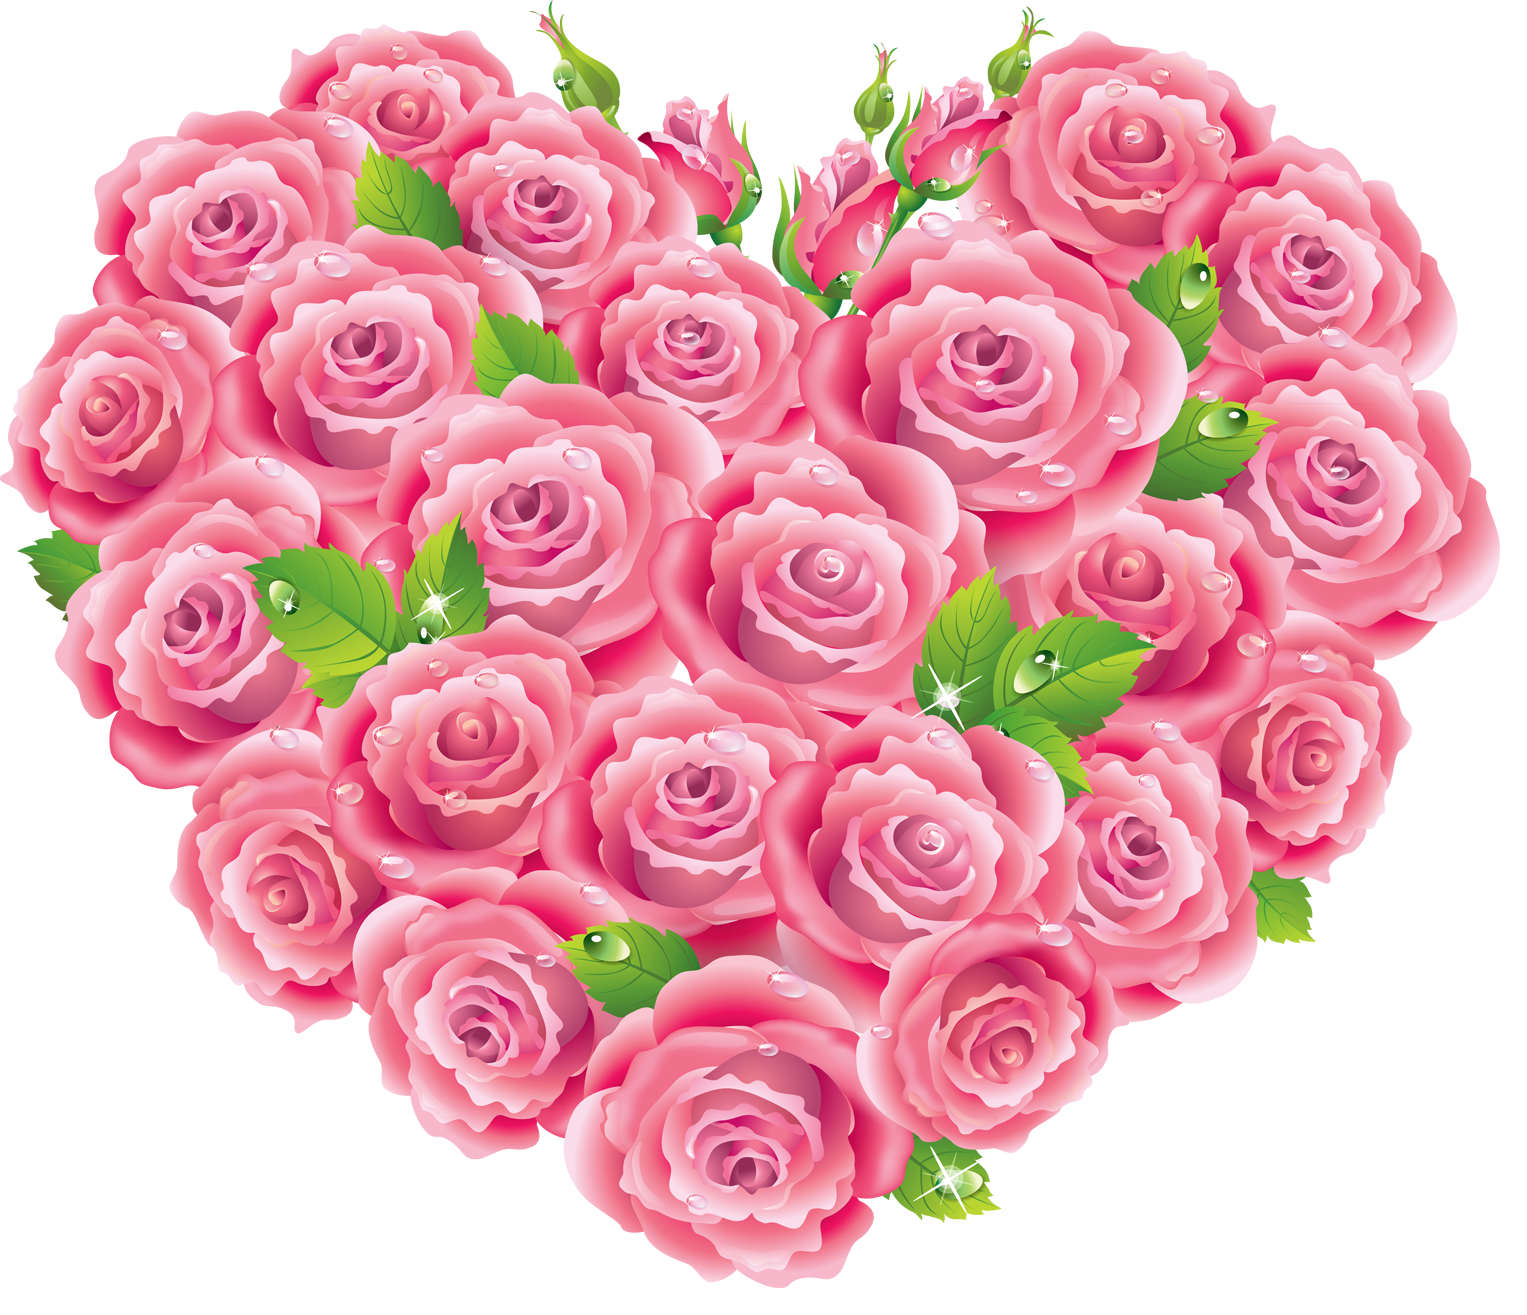 Roses heart gallery yopriceville. Clipart hearts pink